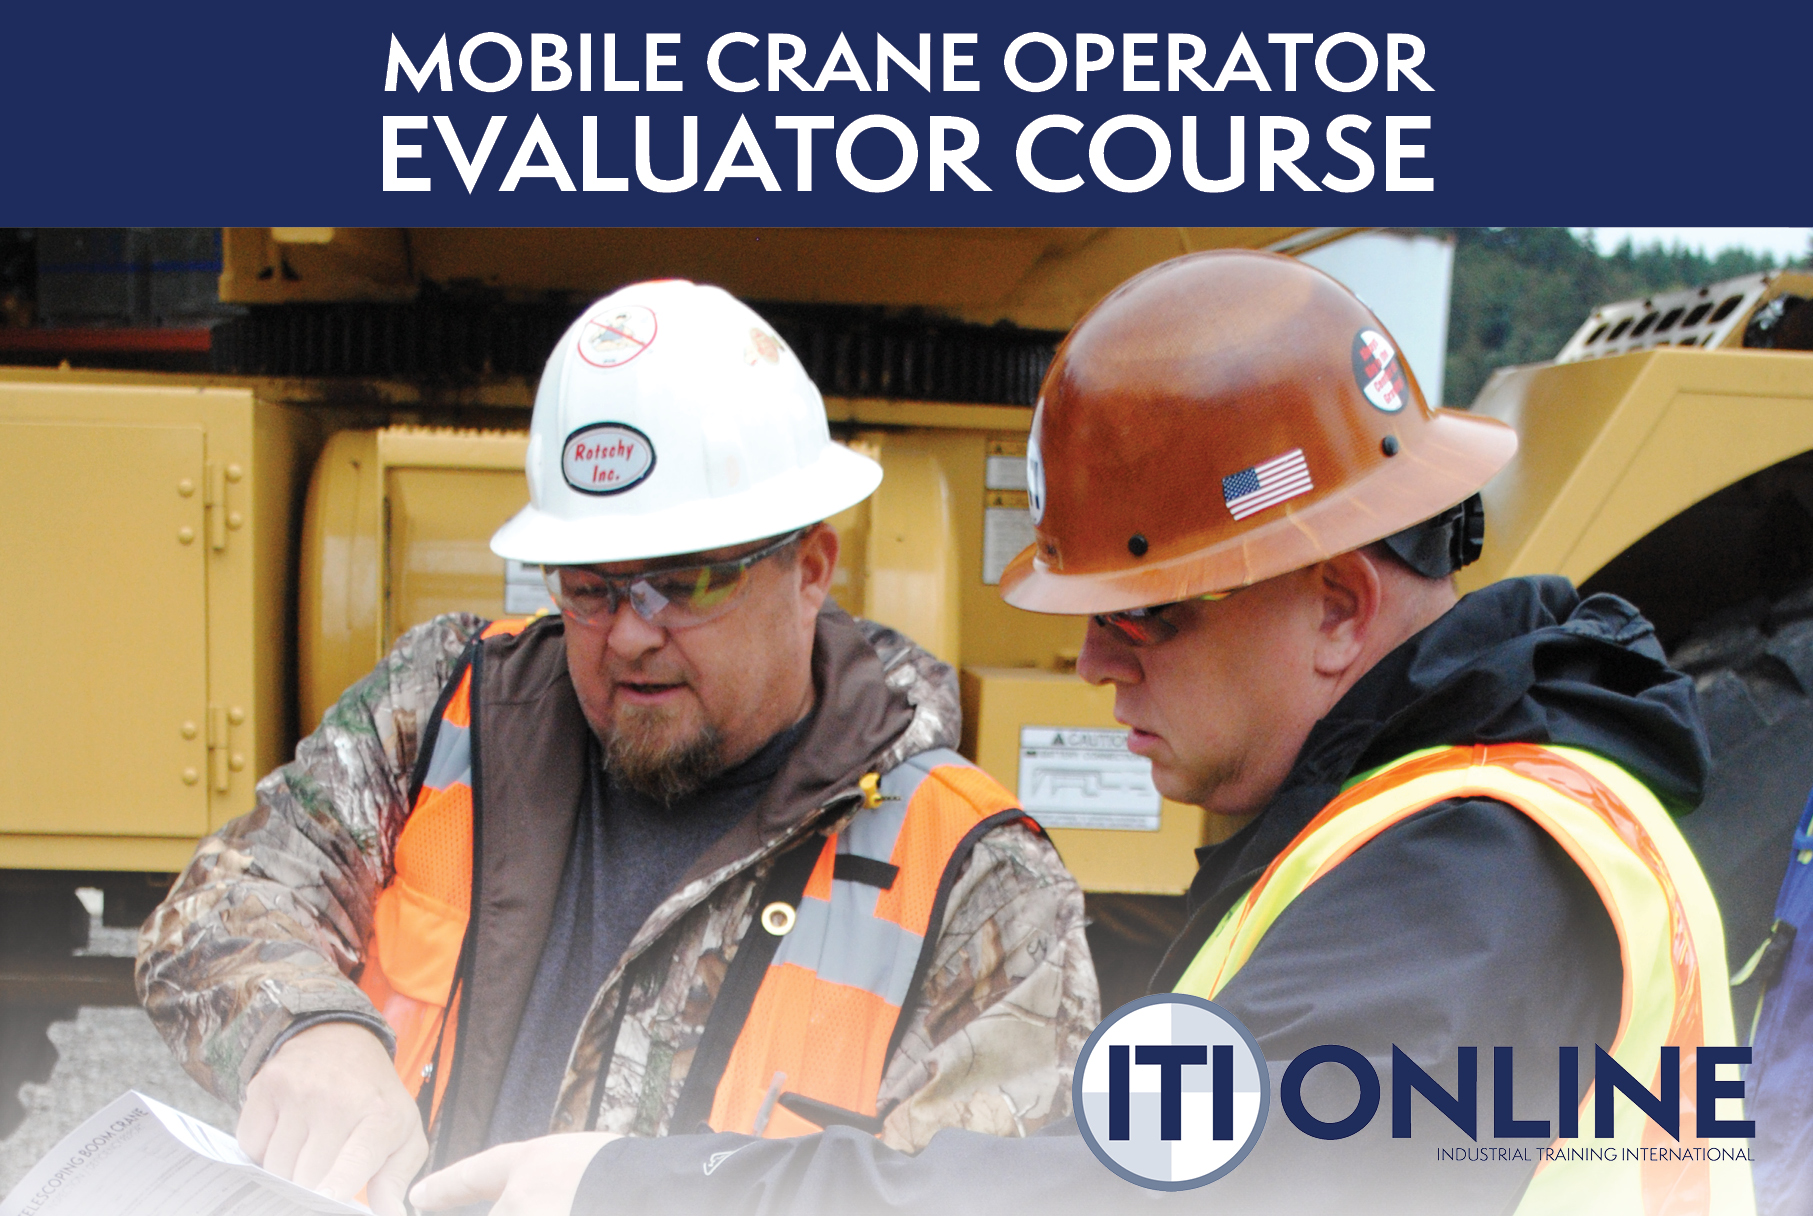 Mobile Crane Operator Evaluator Course from ITI Online [New!]